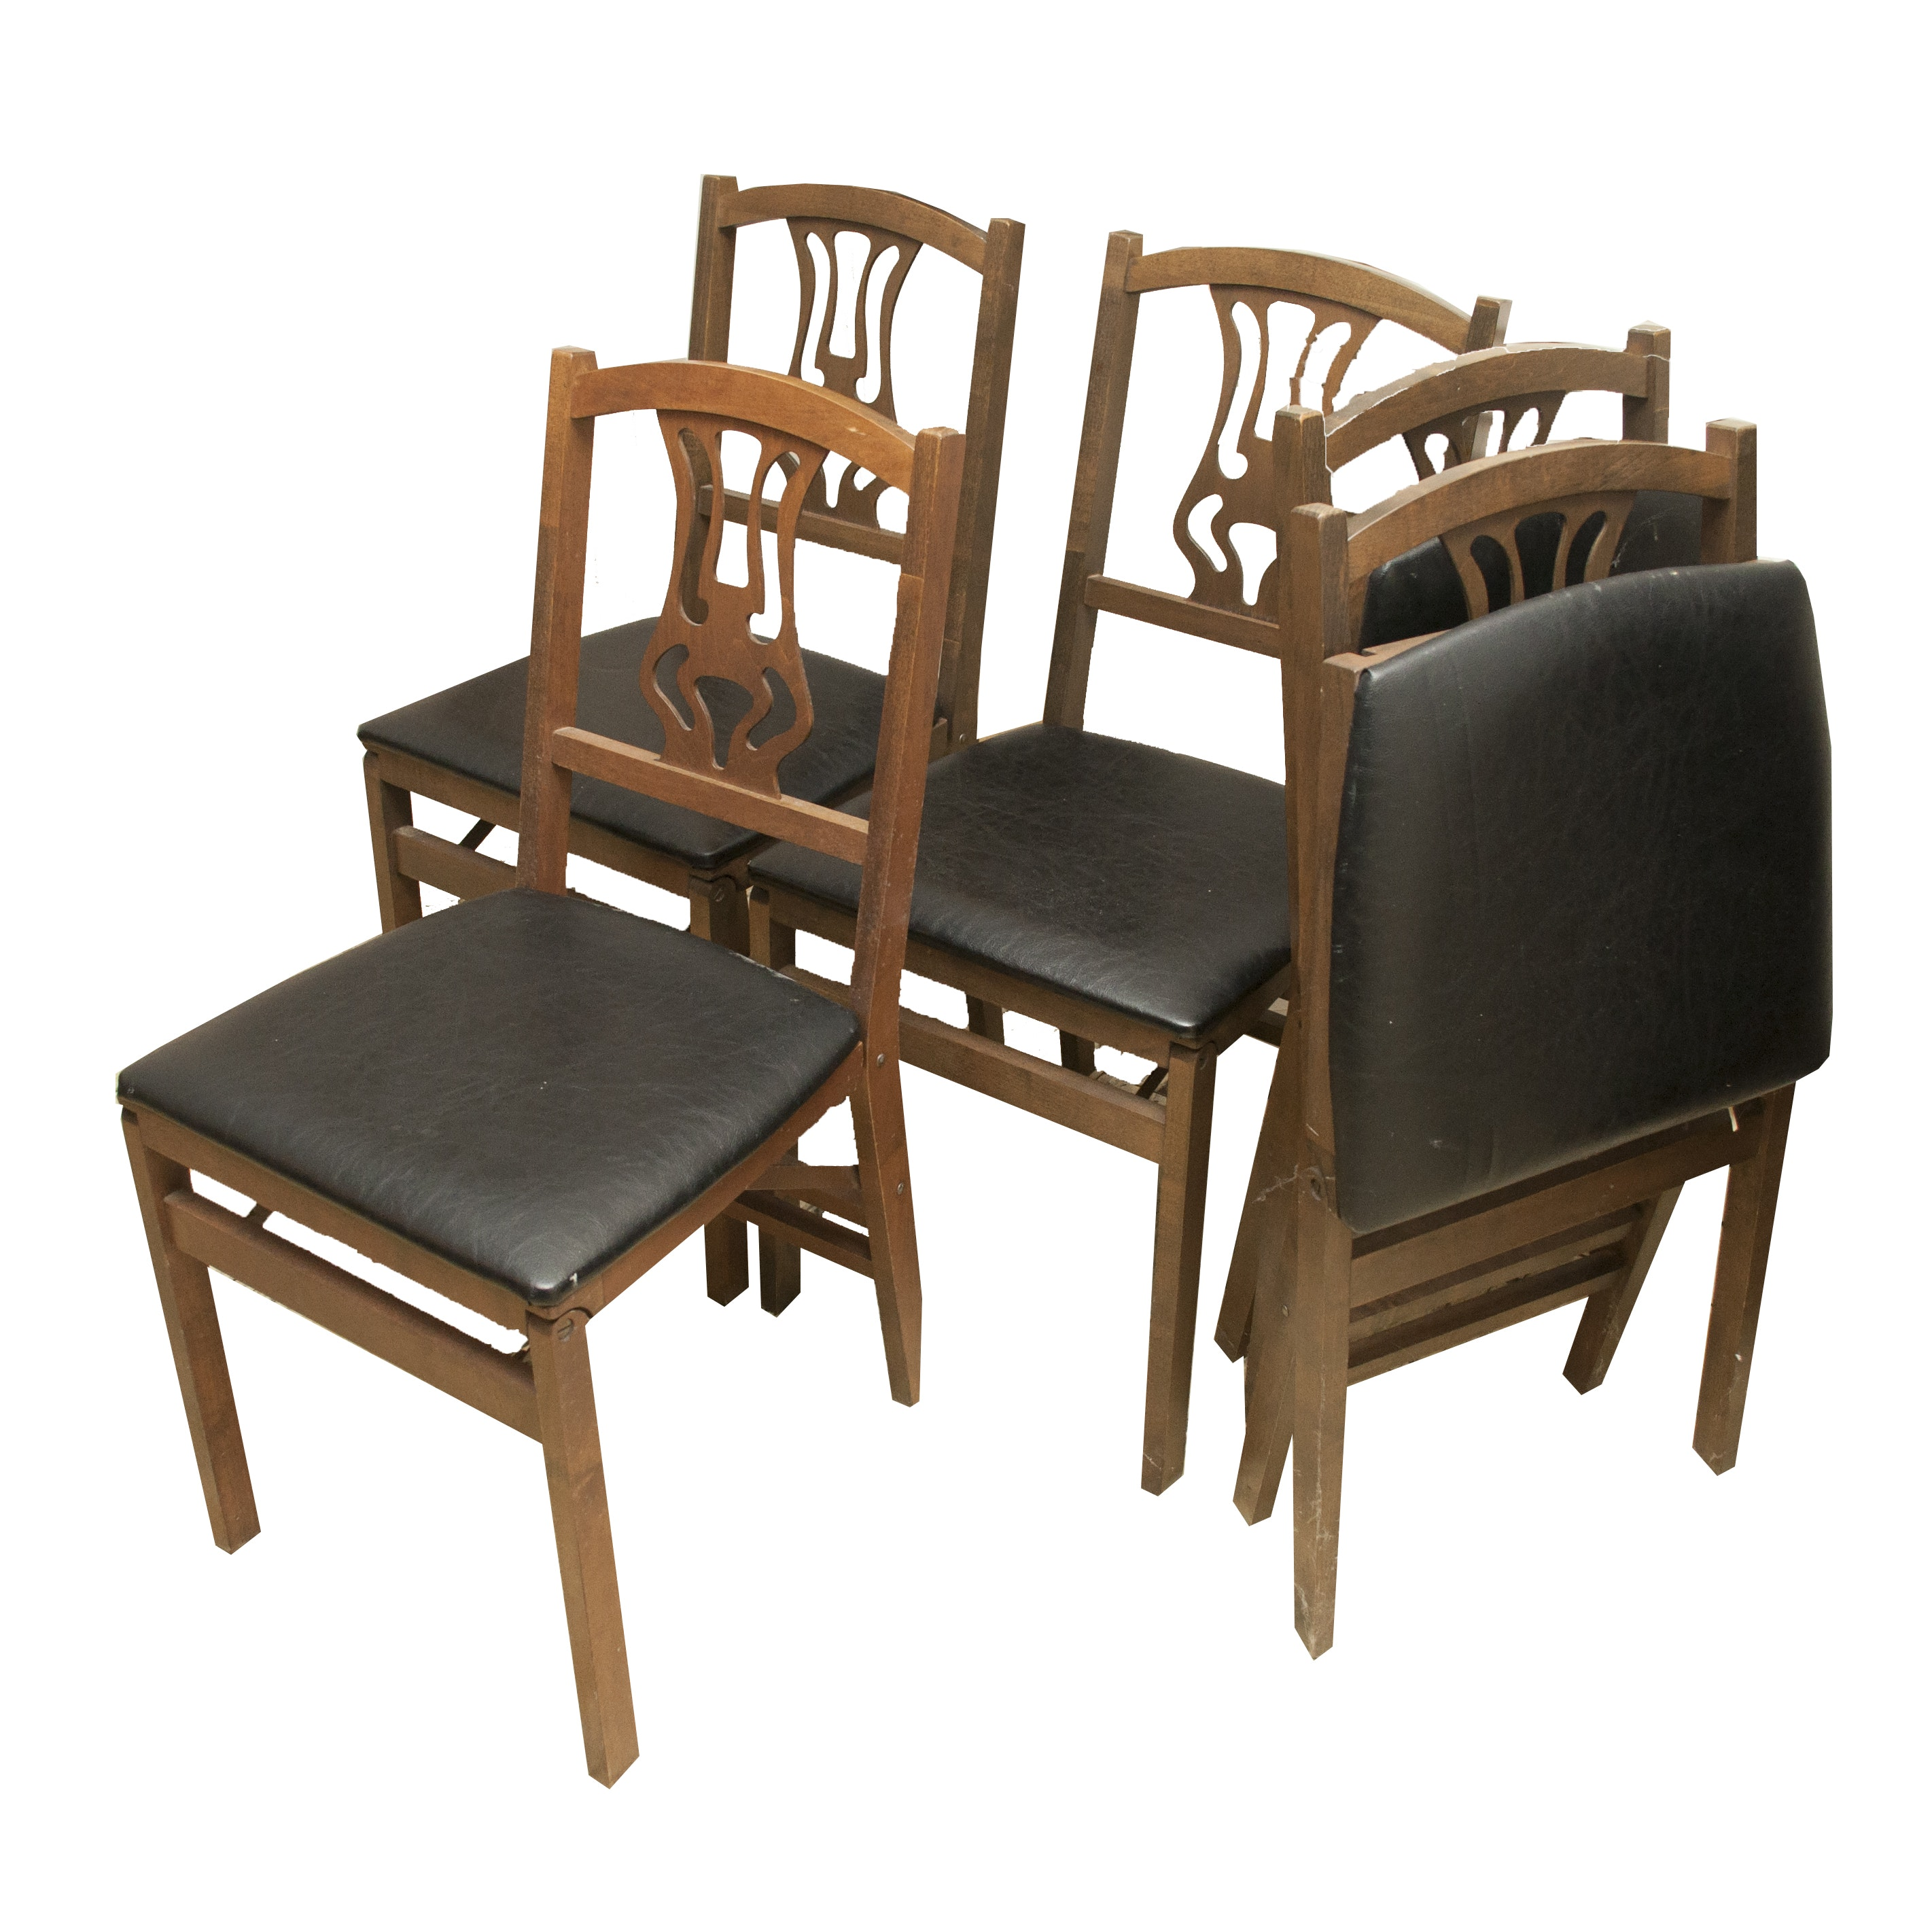 Birch Folding Chairs by Stakmore, Mid-20th Century